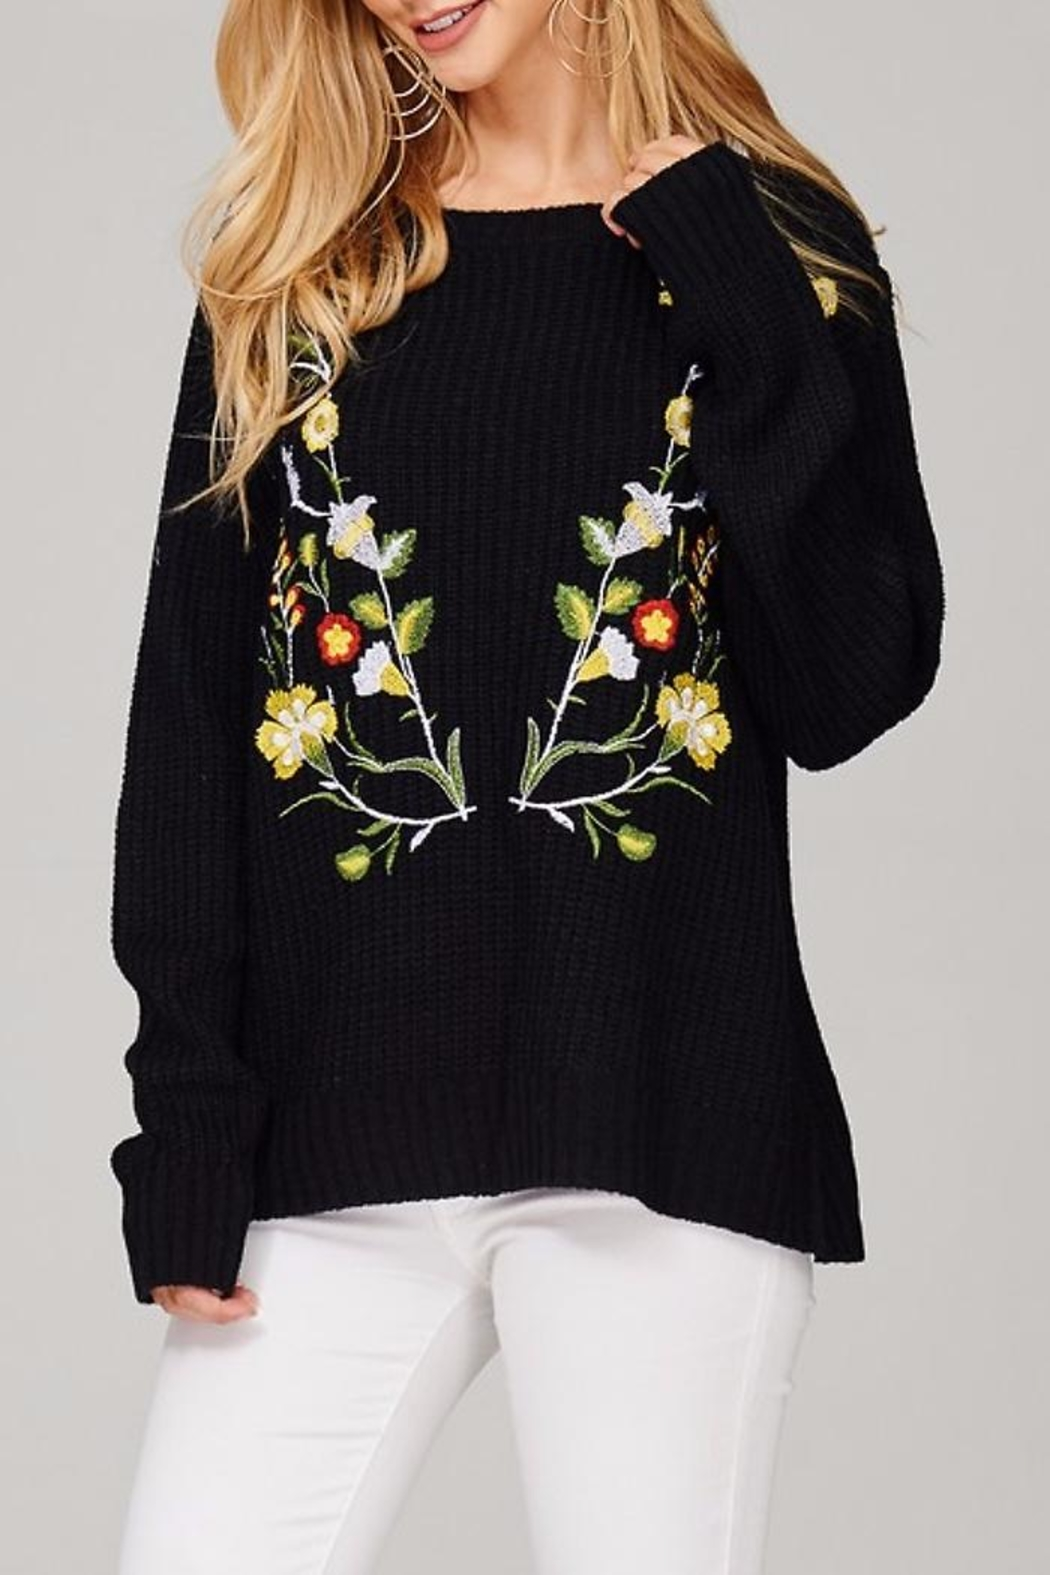 People Outfitter Kaylee's Floral Sweater - Main Image